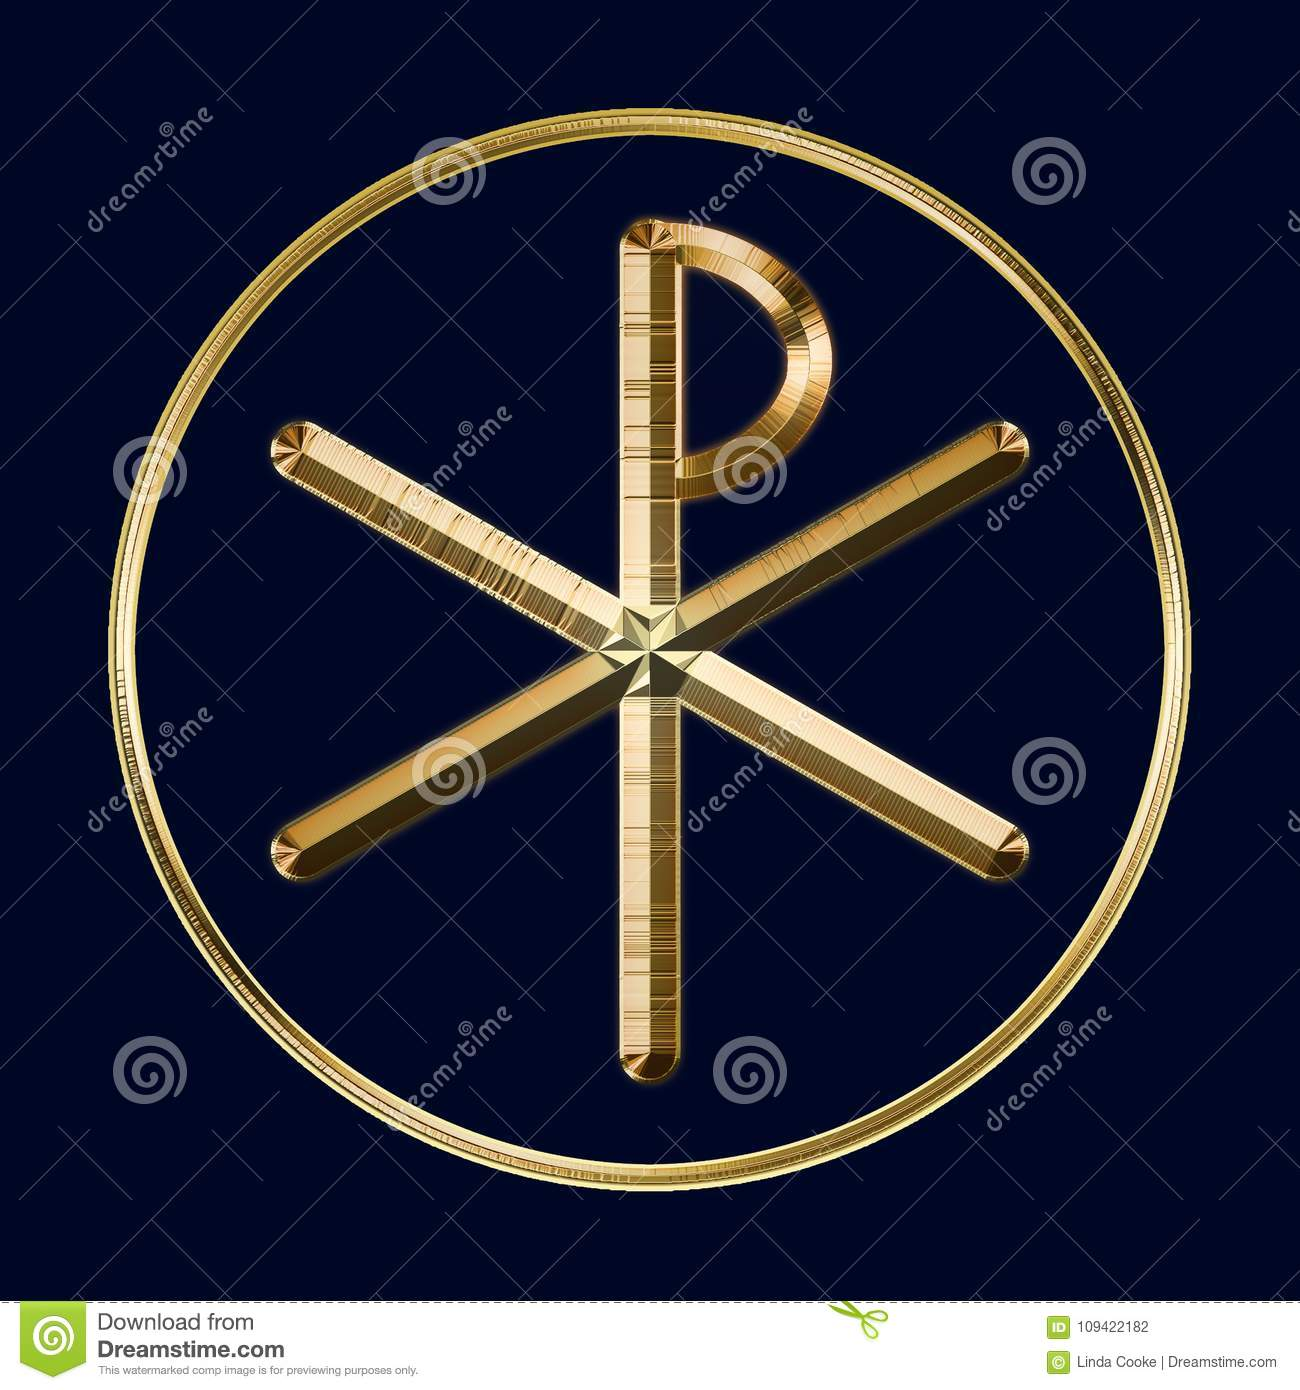 Chi Rho Symbol On Blue Stock Illustration Illustration Of Symbols